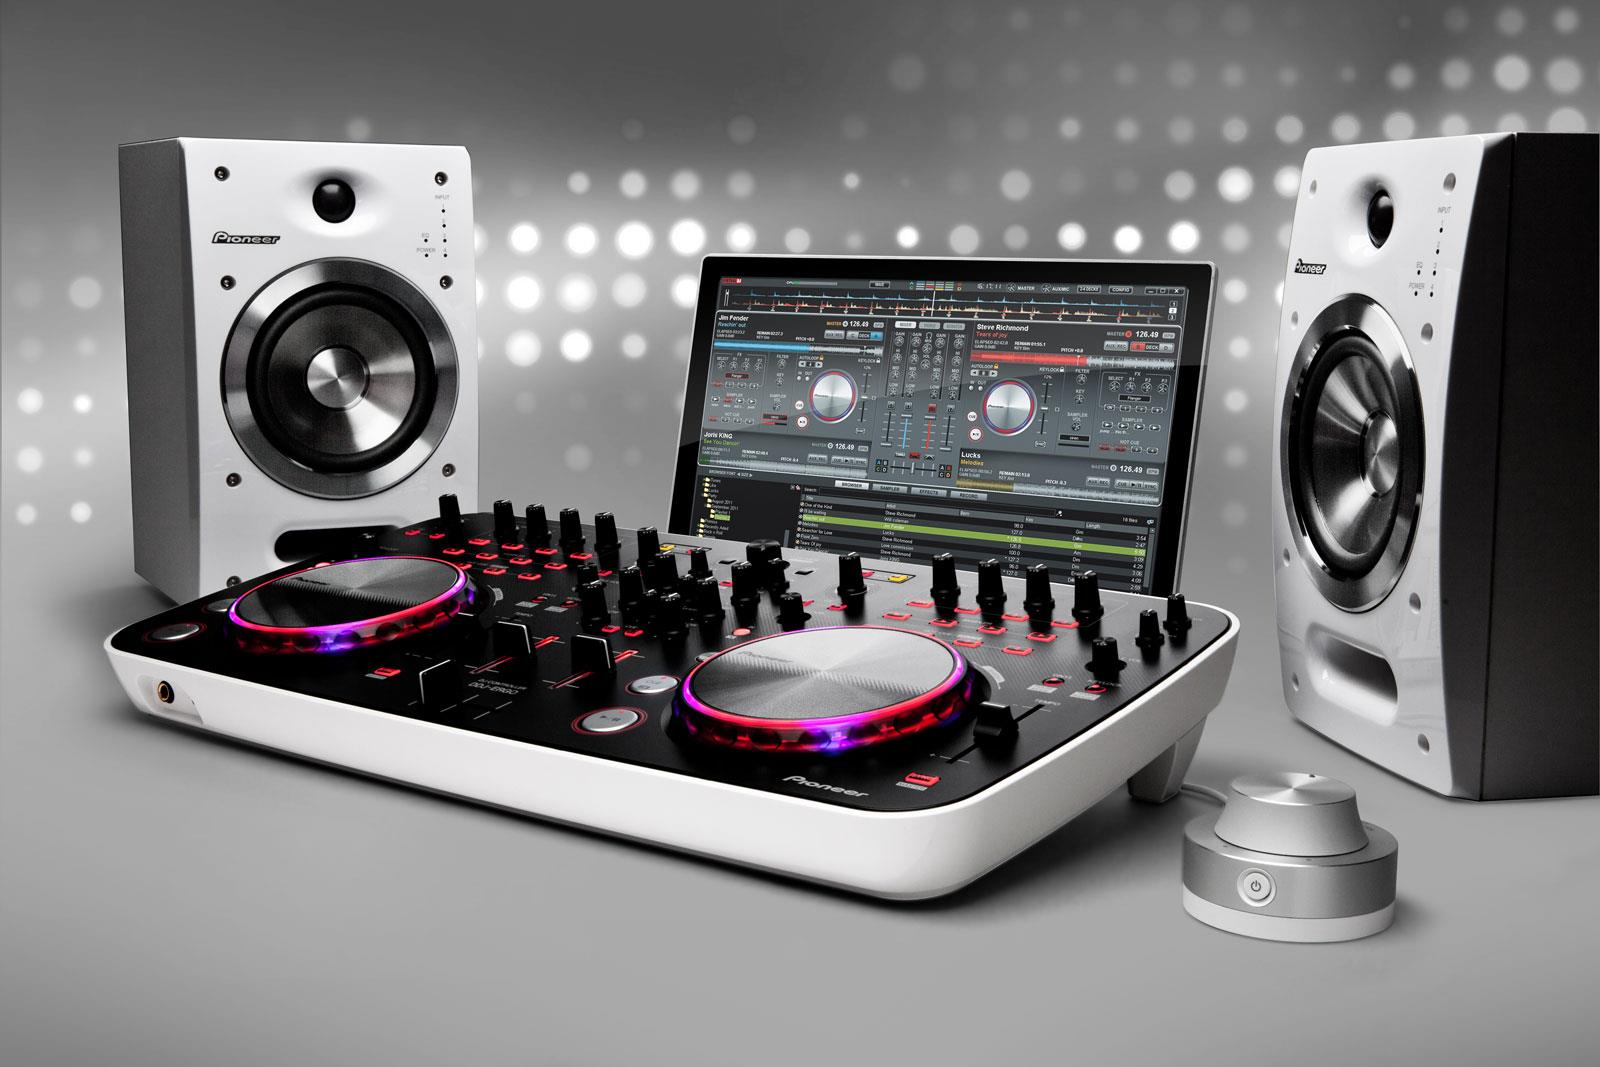 PIONEER DDJ ERGO DJ CONTROLLER PRICE IN INDIA